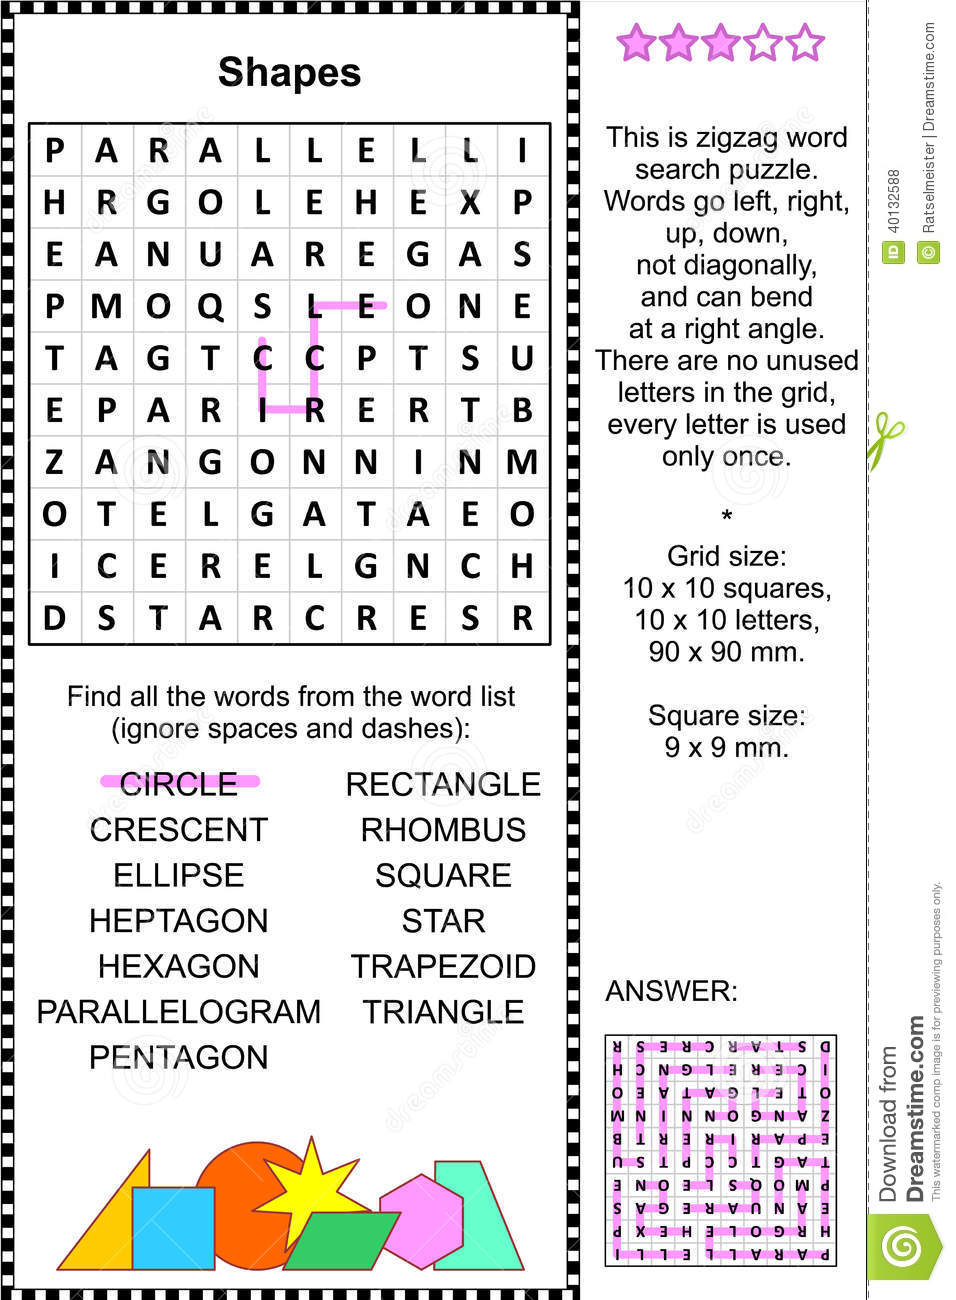 Shapes Themed Wordsearch Puzzle Stock Vector - Image: 40132588